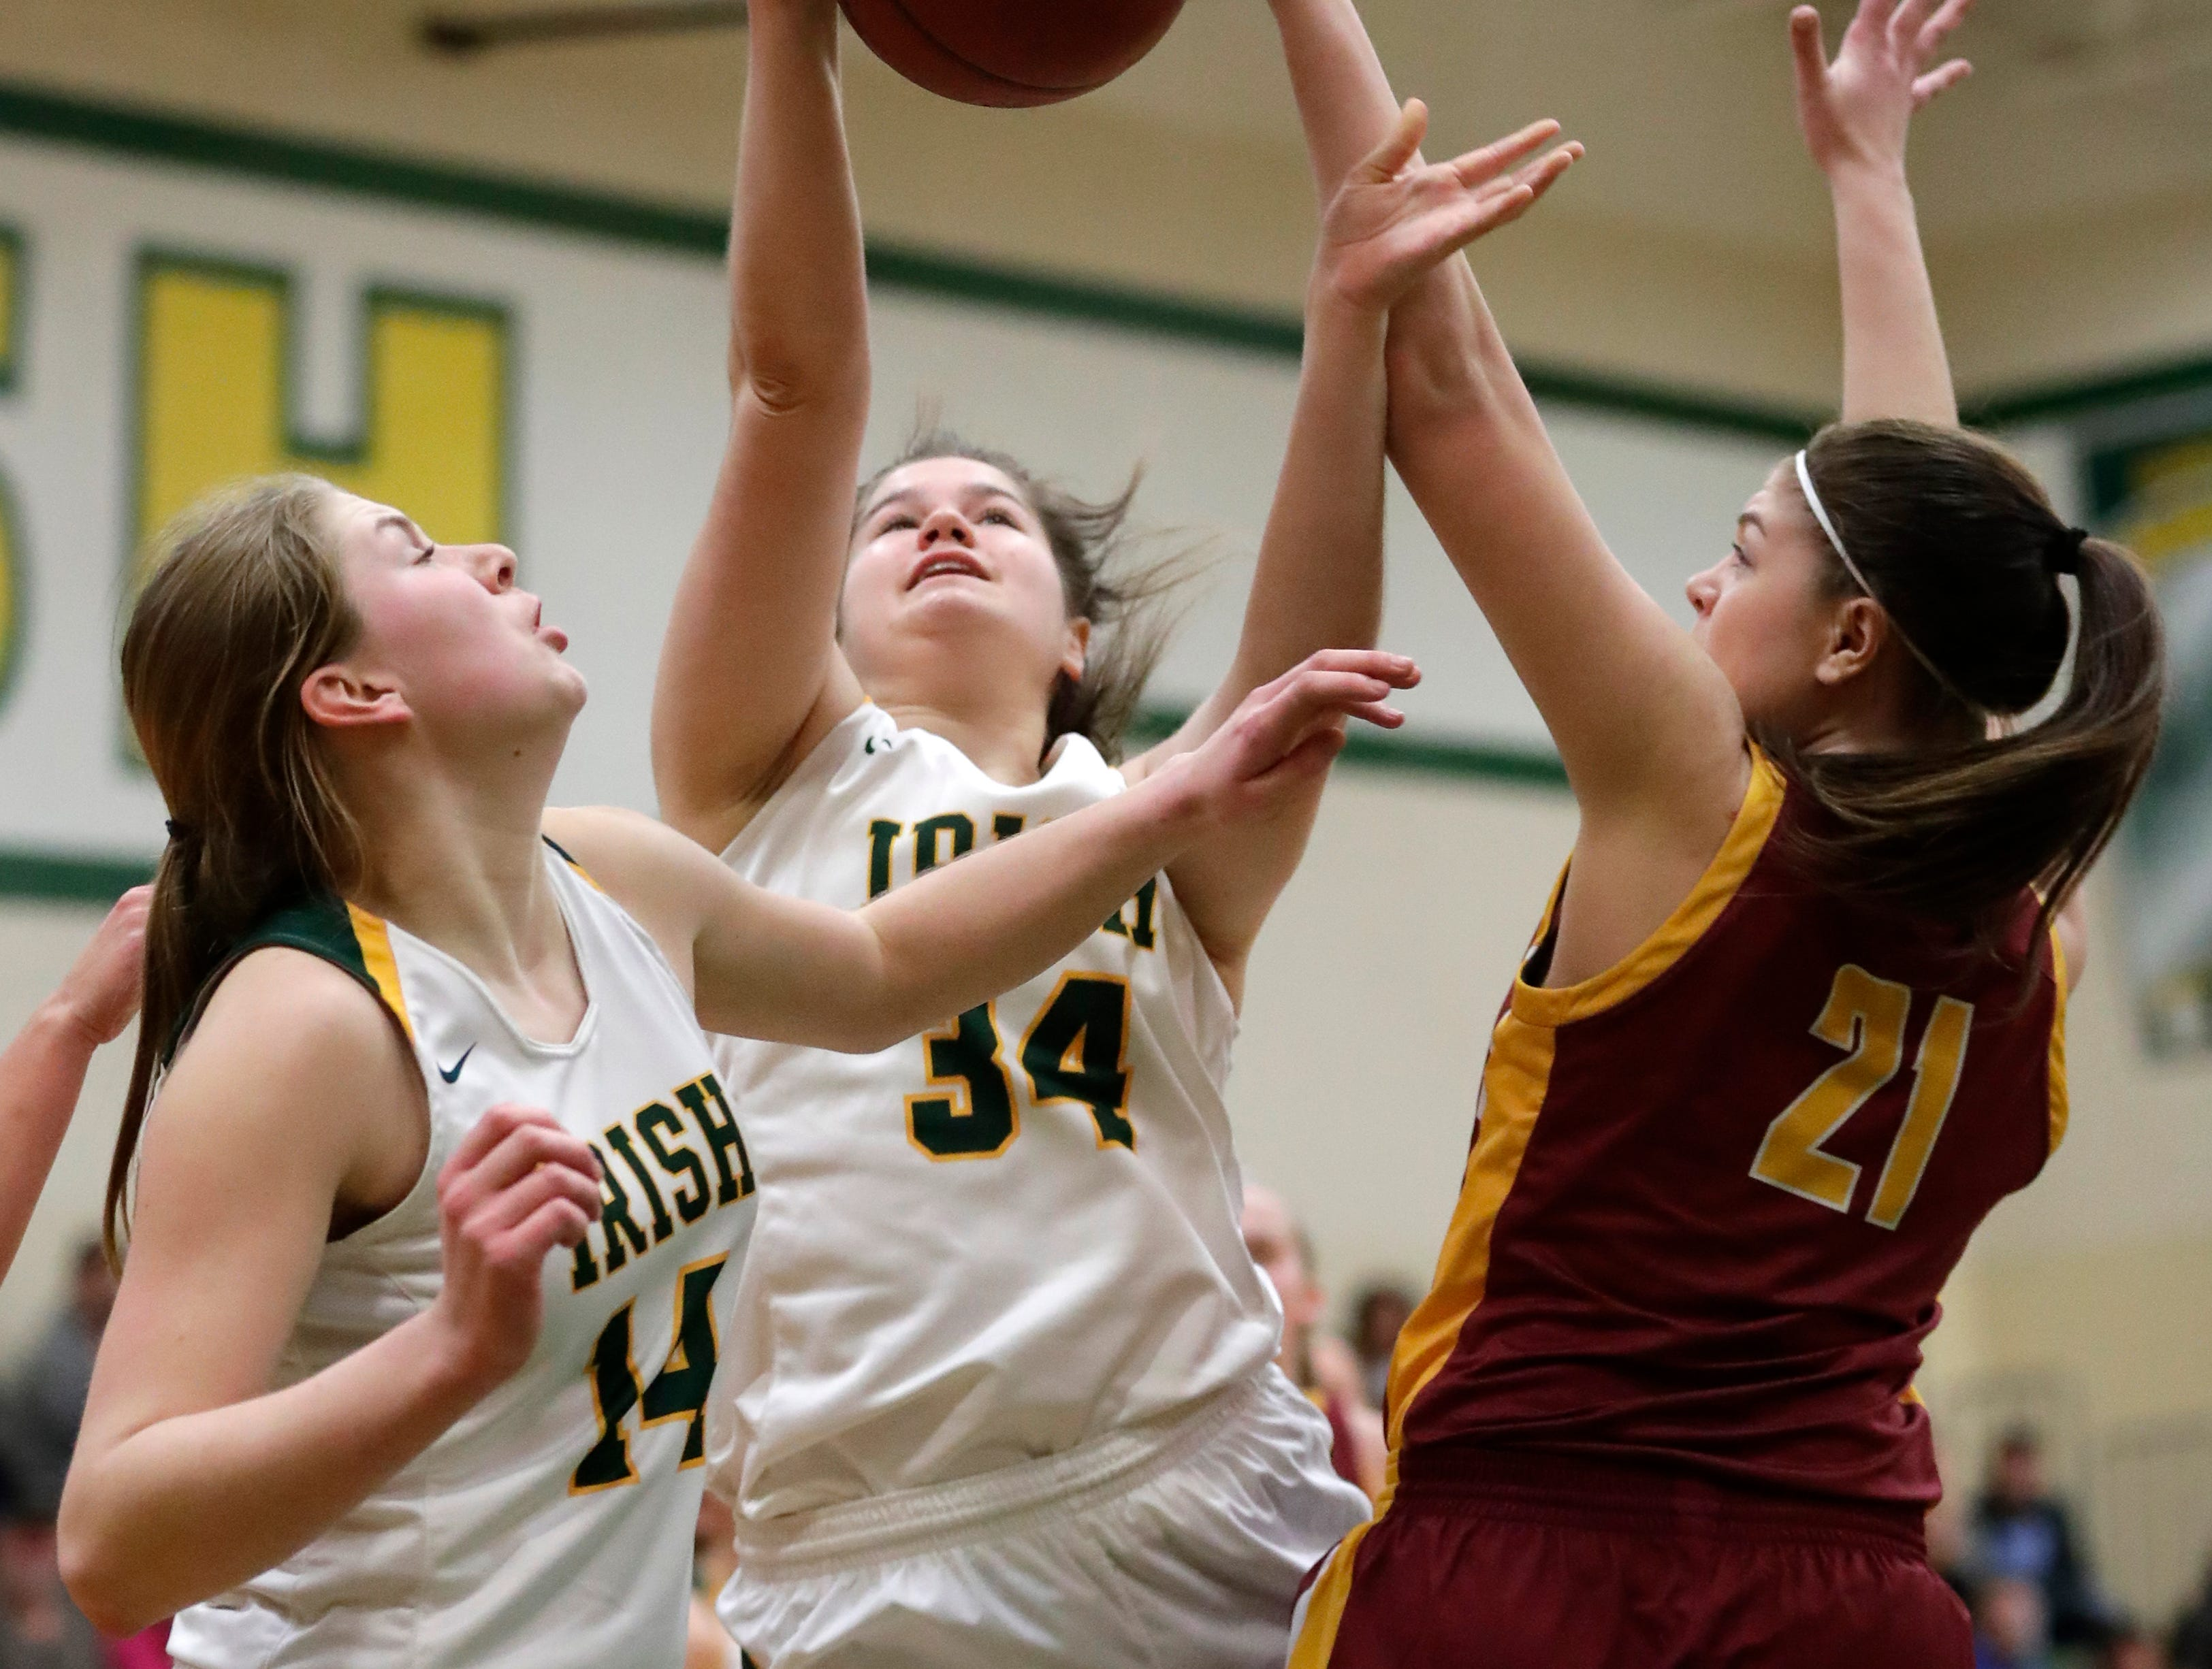 Freedom High School's Linnea Willer (34) puts up a shot against Luxemburg-Casco High School's Paige Skubal (21) as Karissa Wurster (14) positions herself for a potential rebound during their girls basketball game Thursday, January 24, 2019, in Freedom, Wis. Dan Powers/USA TODAY NETWORK-Wisconsin